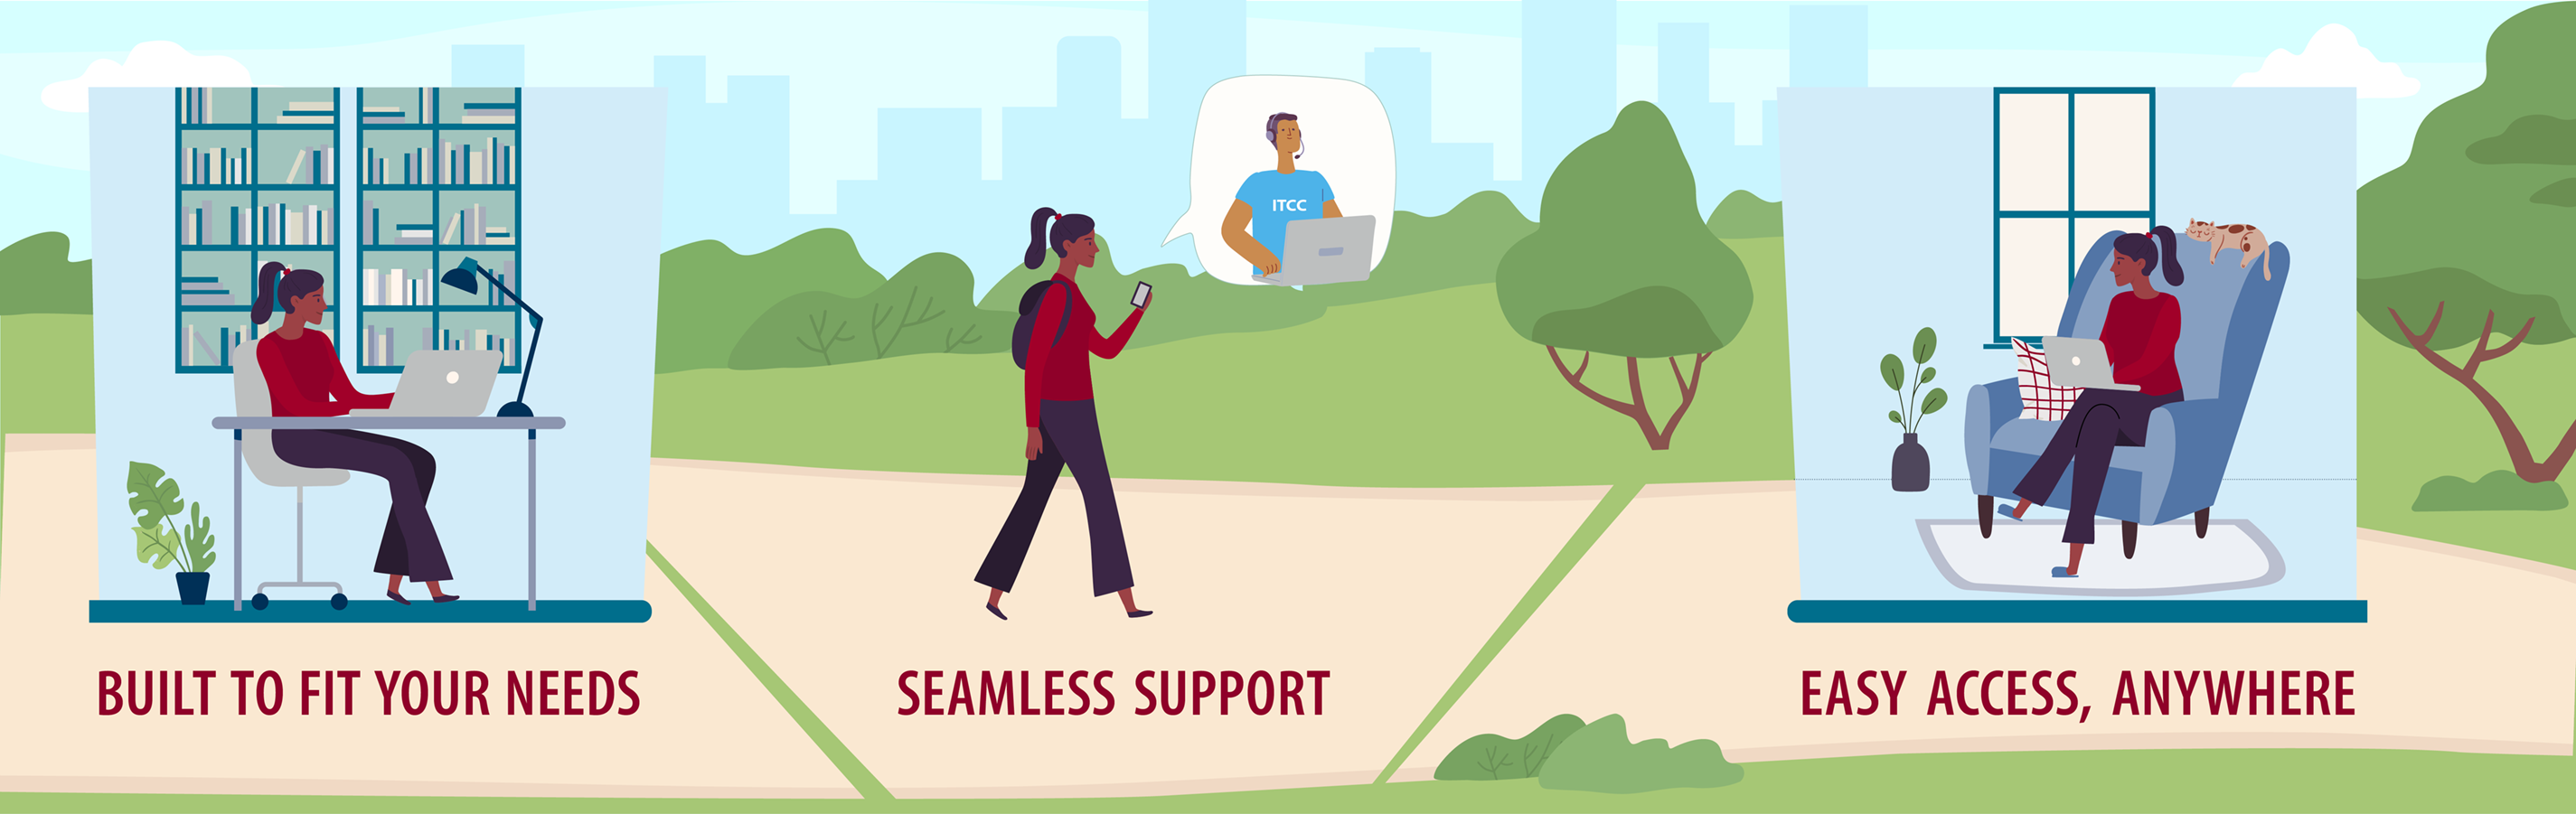 Cartoon showing a person at the office, in the park, and at home using technology. Text saysBuilt to fit your needs, seamless support, easy access anywhere